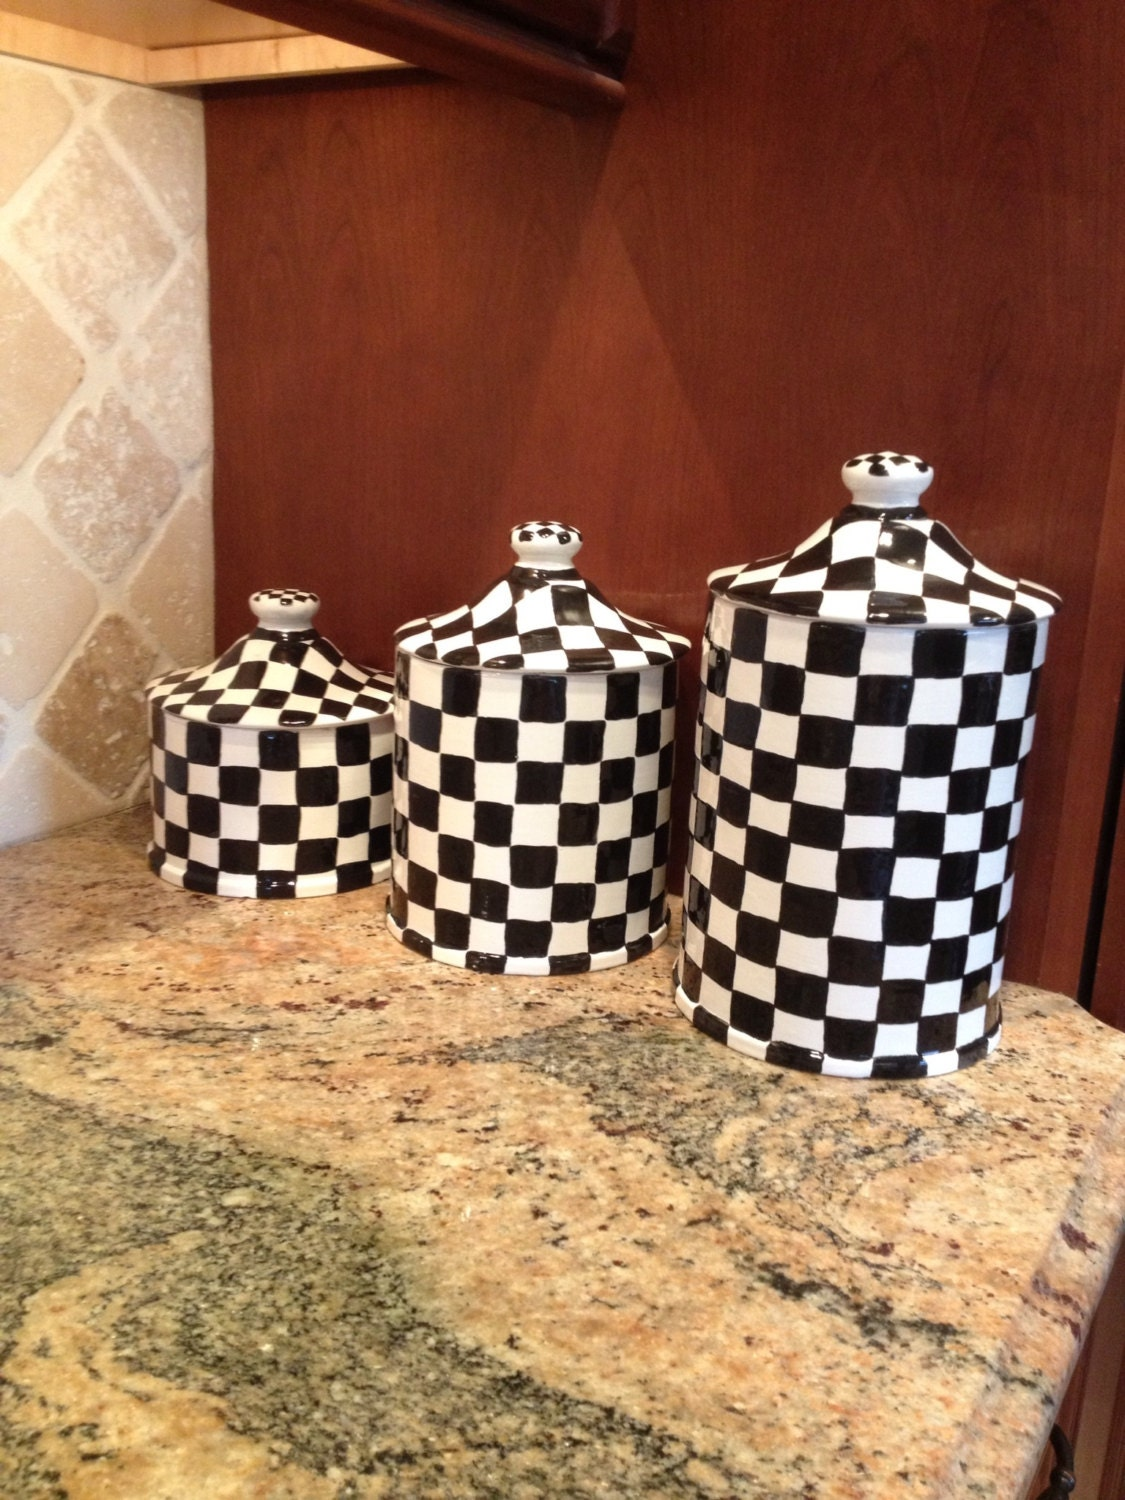 Black Kitchen Canisters Ceramic Clay Black And White Checkered Canister Set For